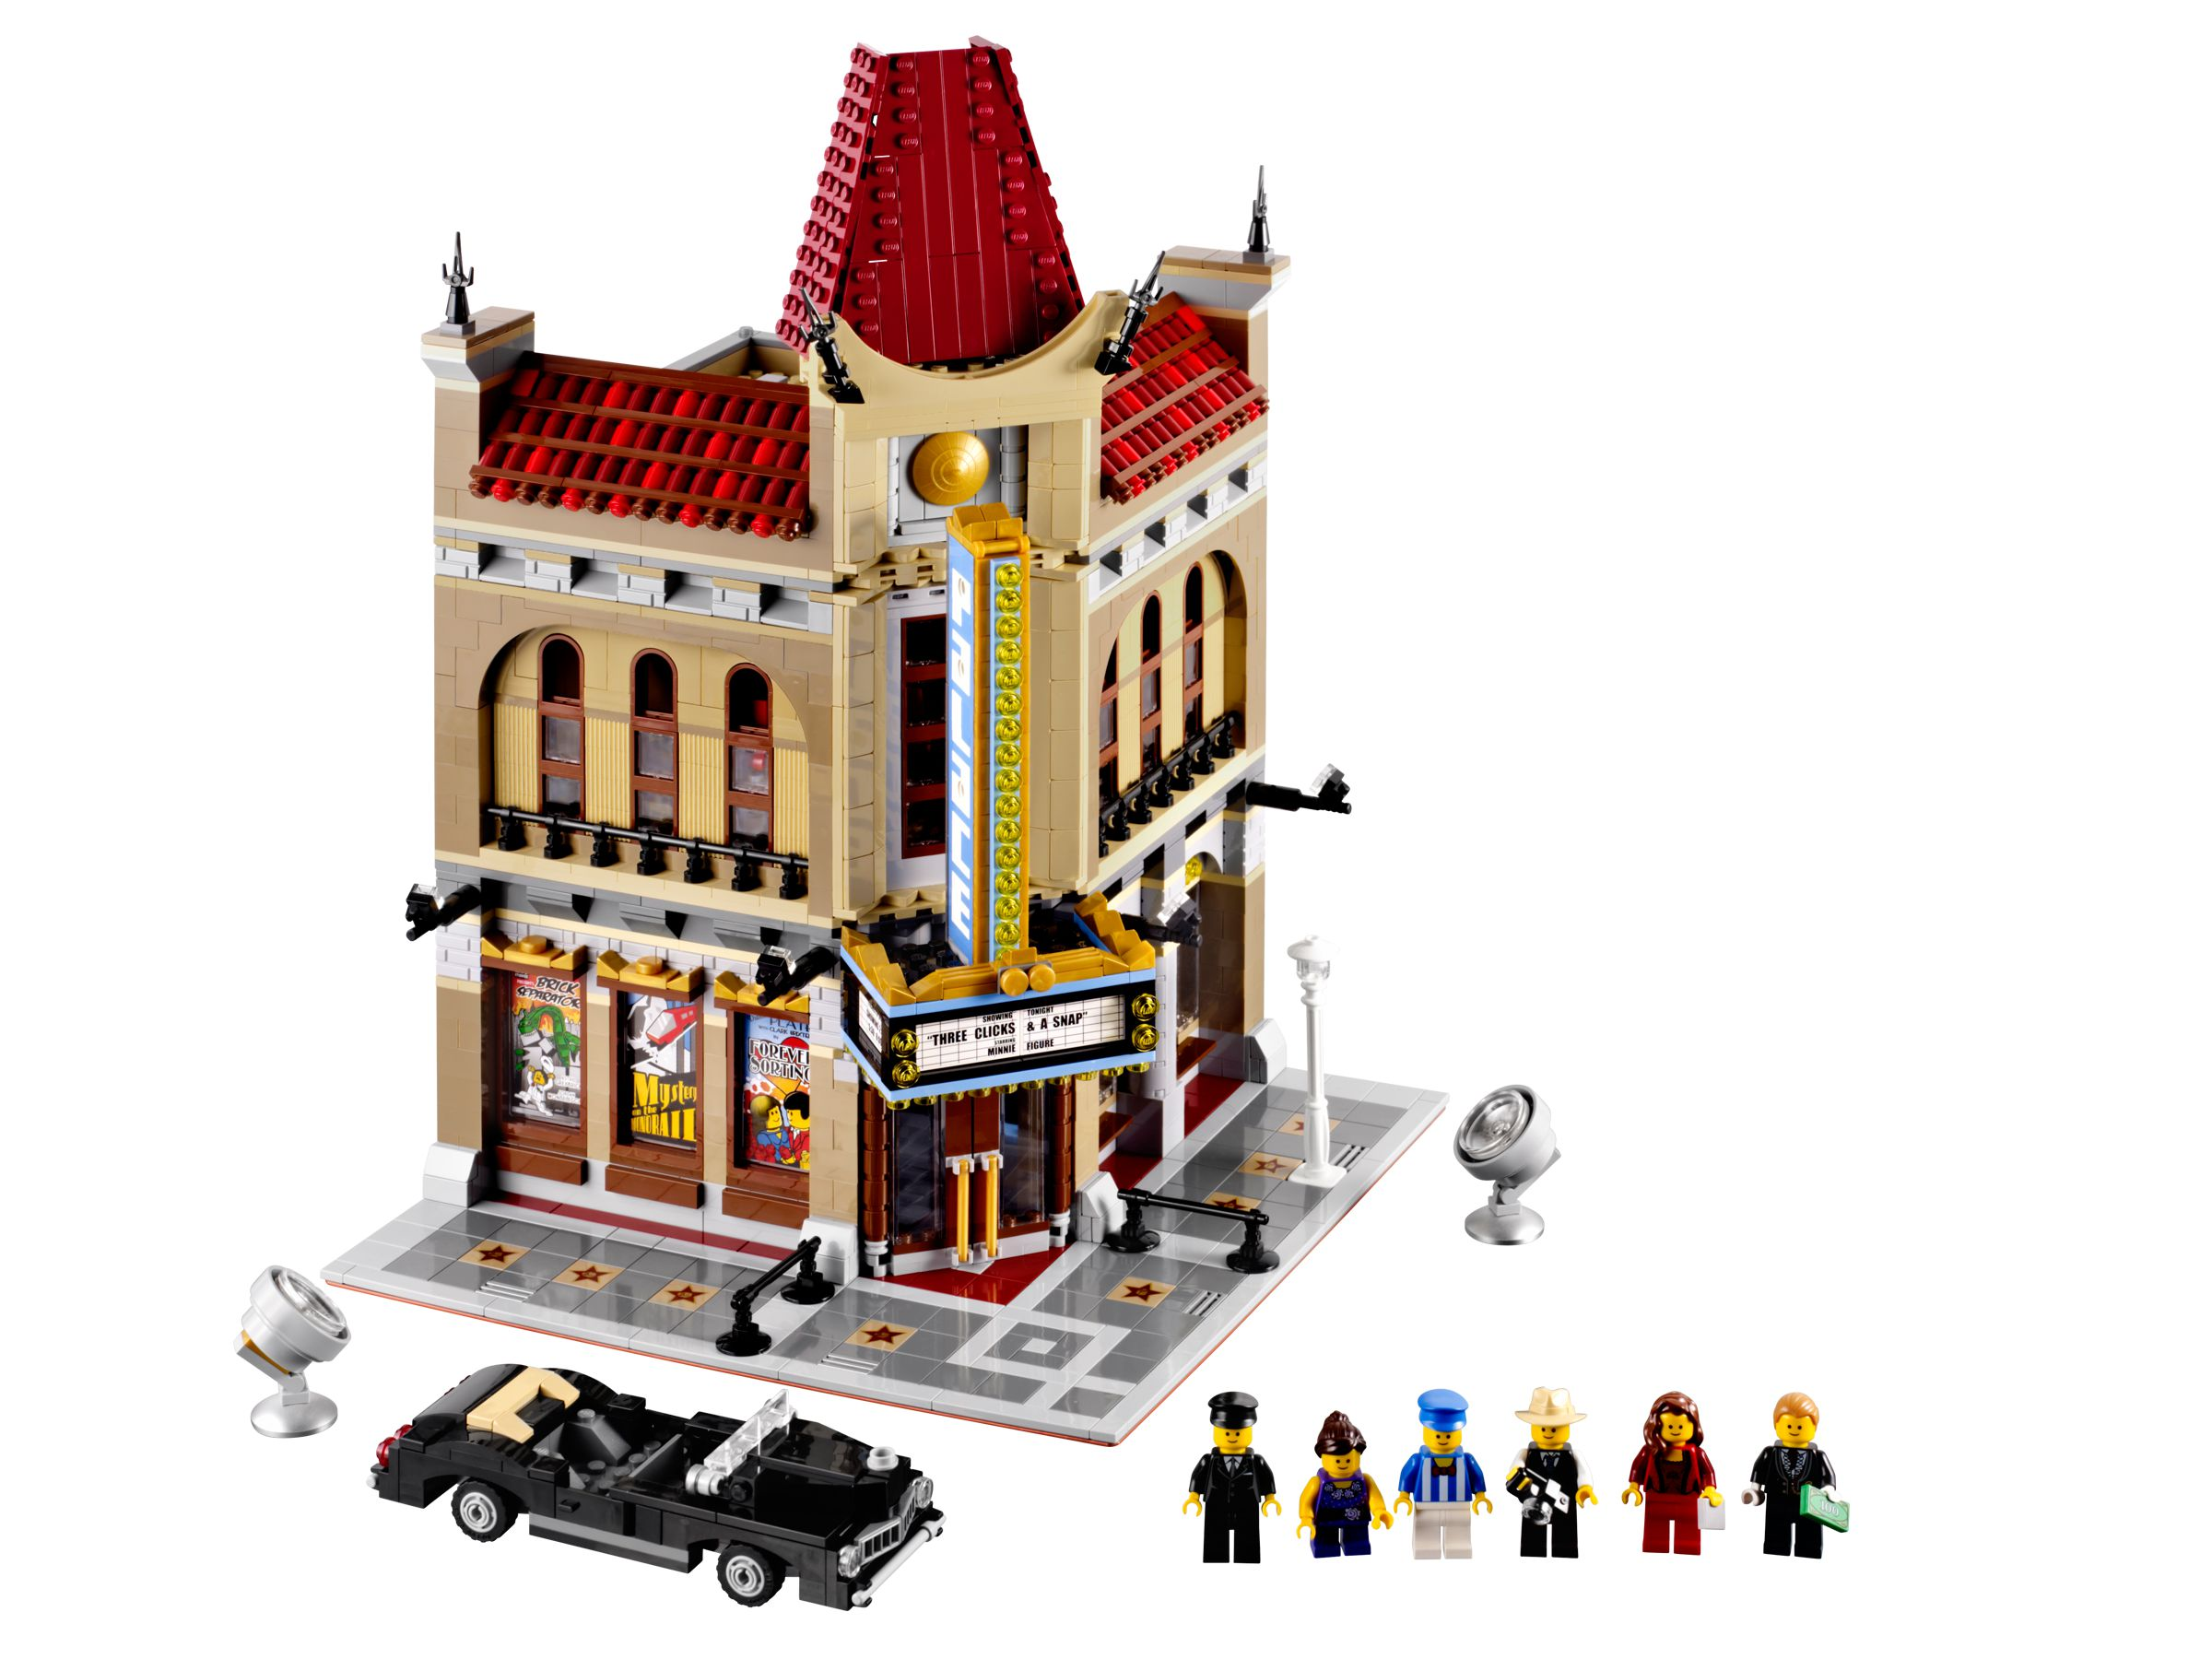 LEGO Advanced Models 10232 Palace Cinema LEGO_10232.jpg